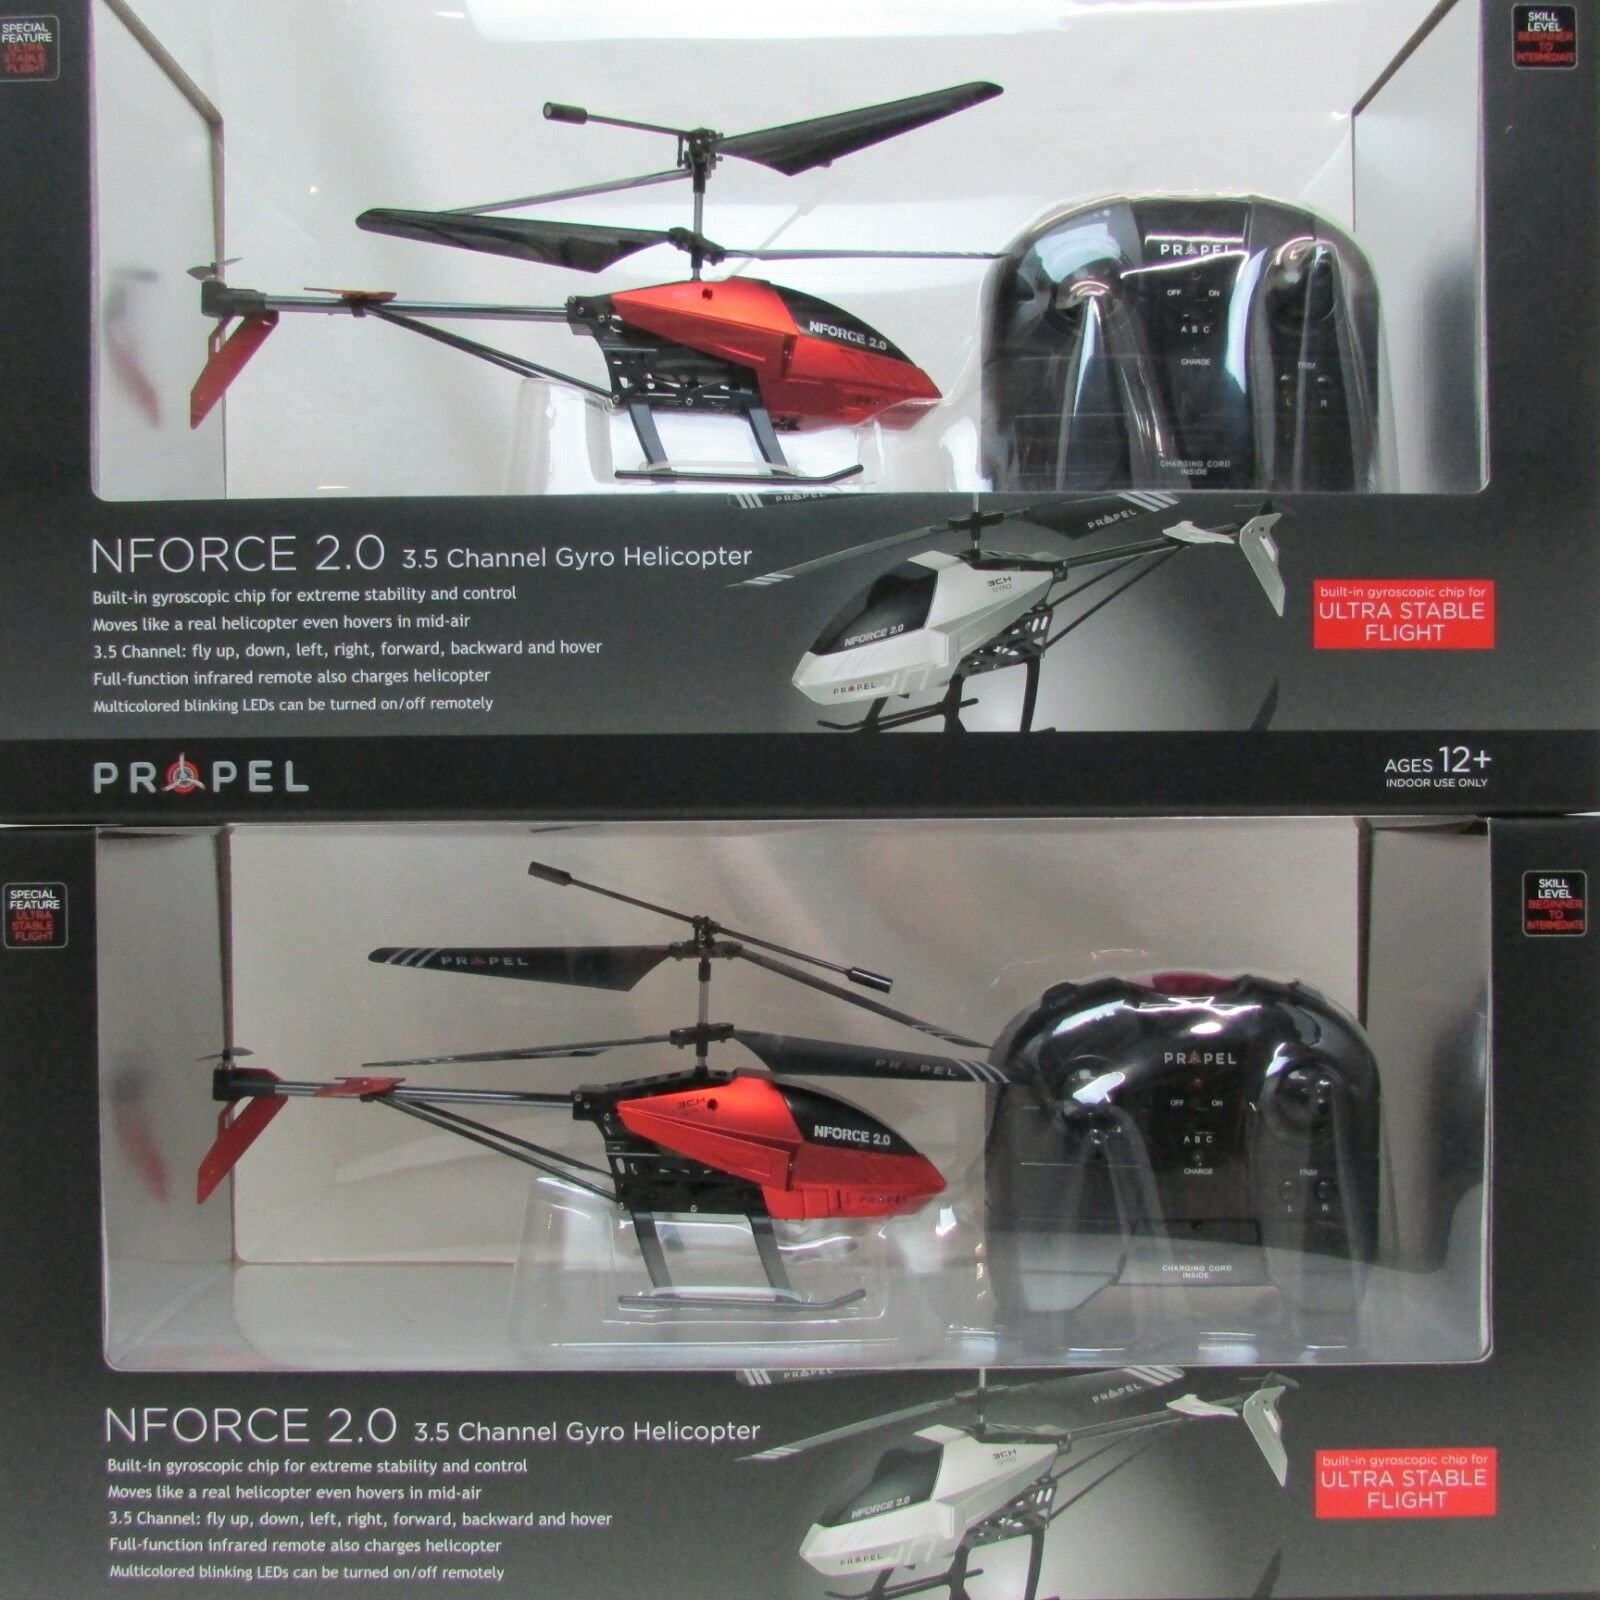 UPC 849826012718 - NFORCE 2 0 3 5 Channel Gyro Helicopter